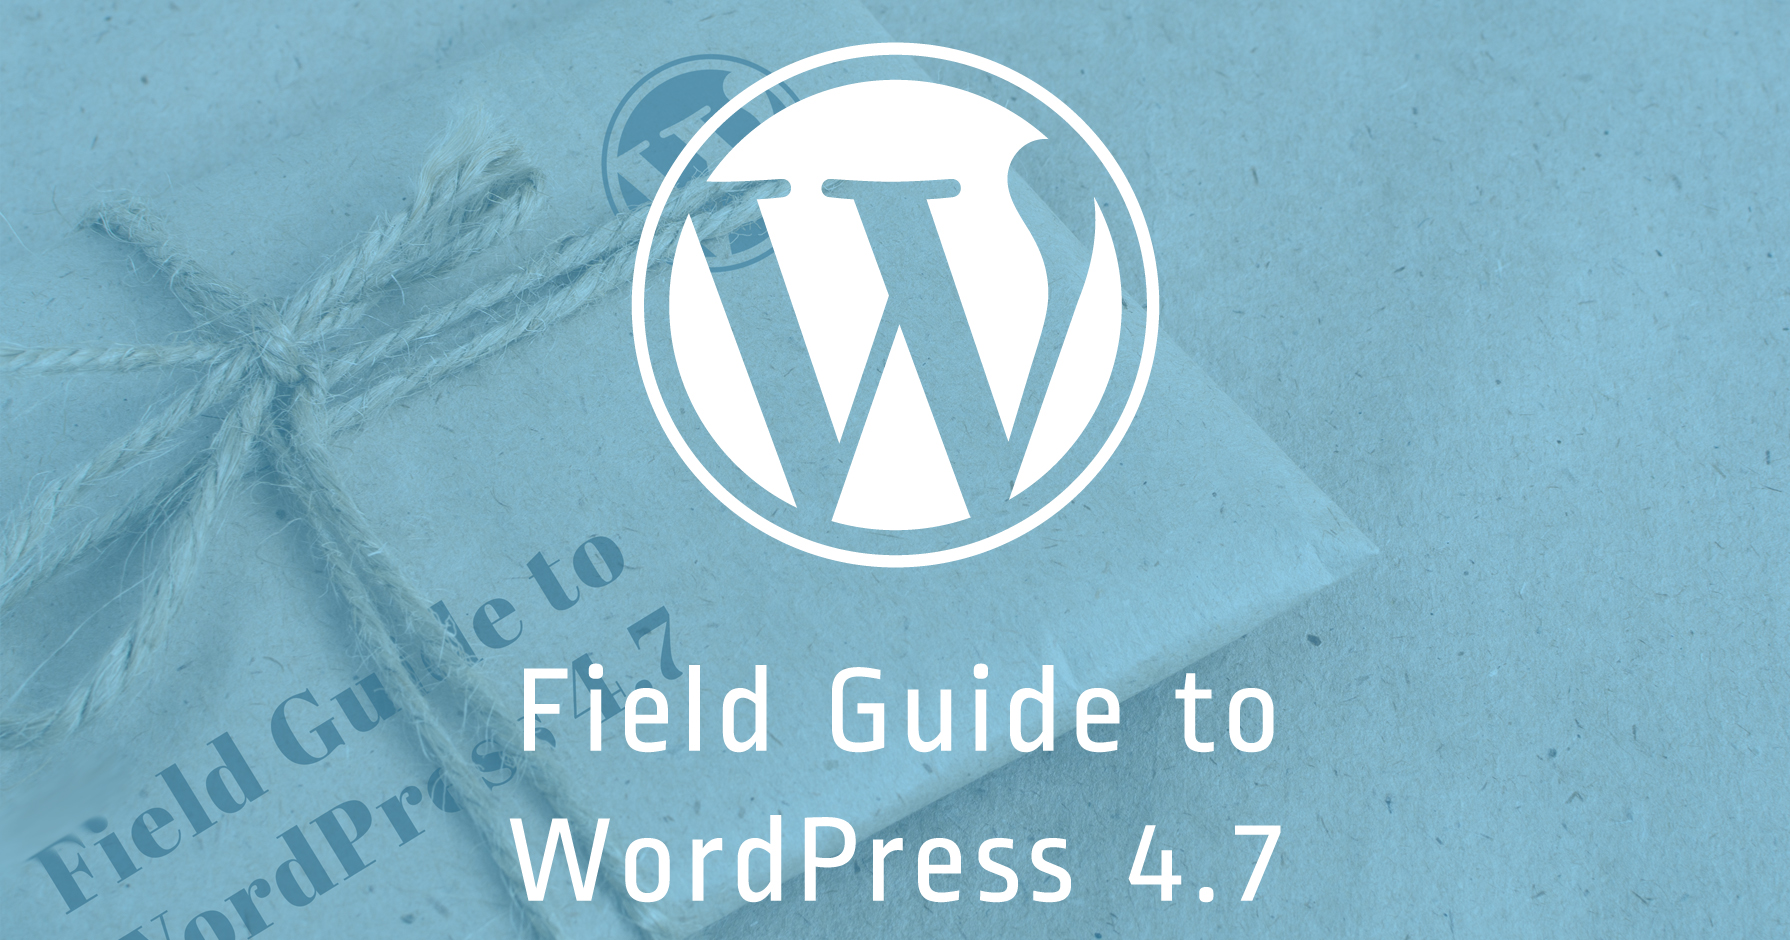 Way to WordPress 4.7 – A Field Guide to WordPress 4.7